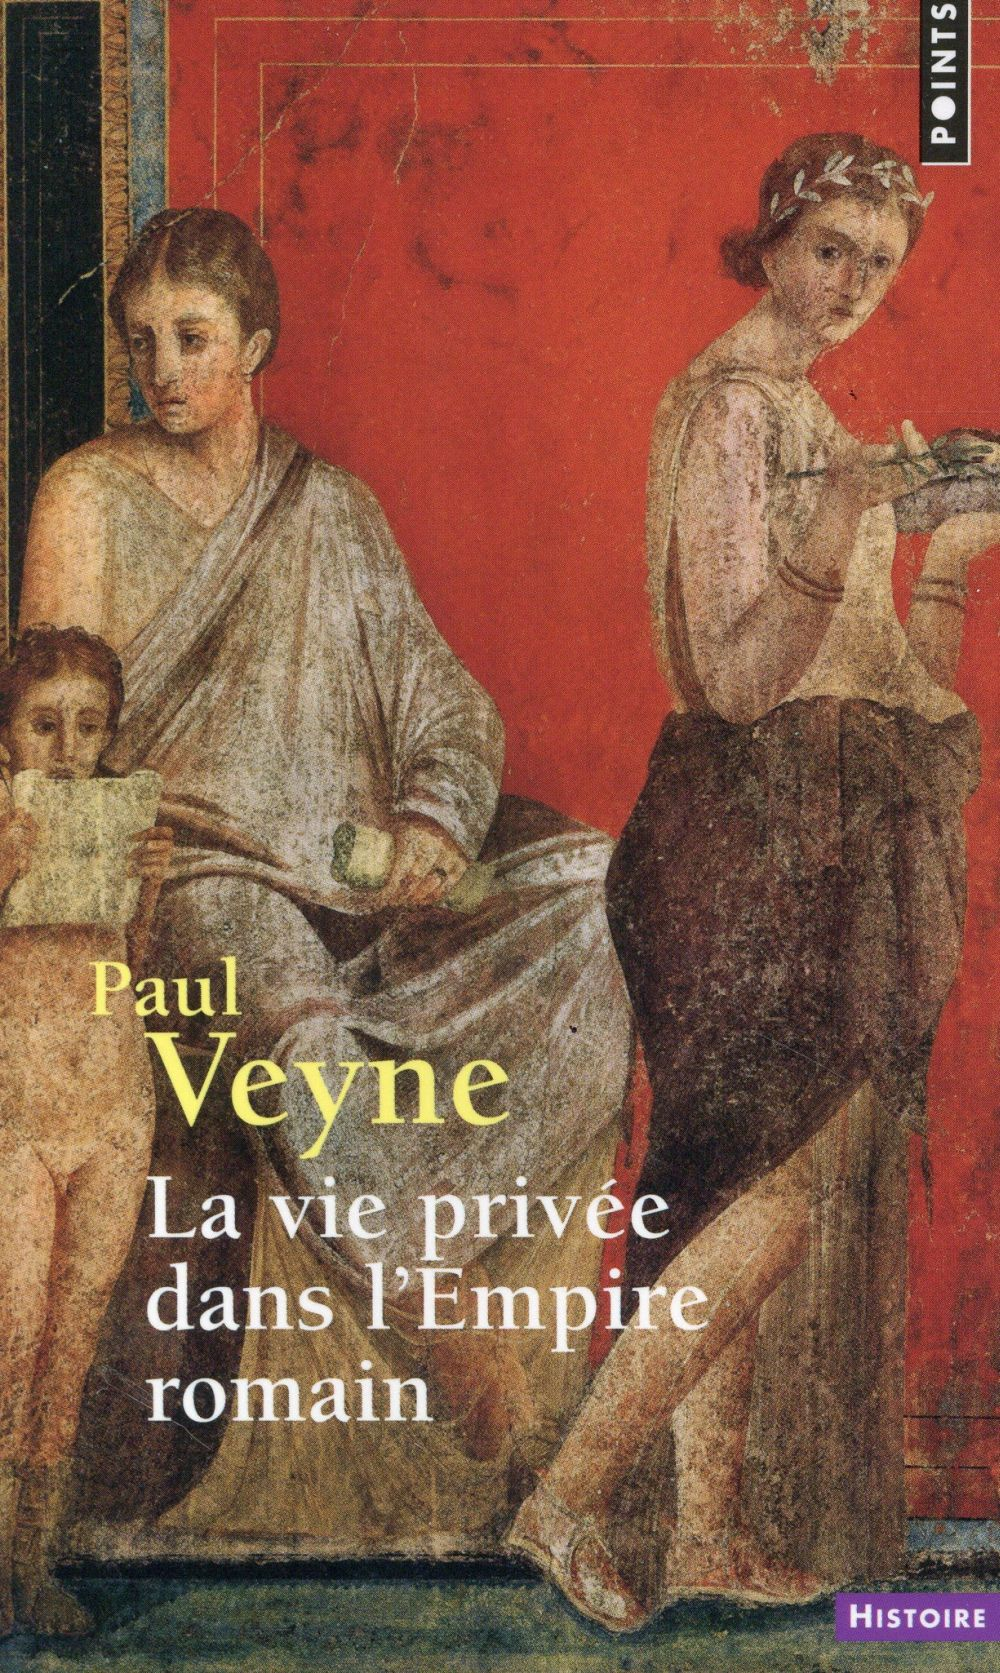 LA VIE PRIVEE DANS L'EMPIRE ROMAIN